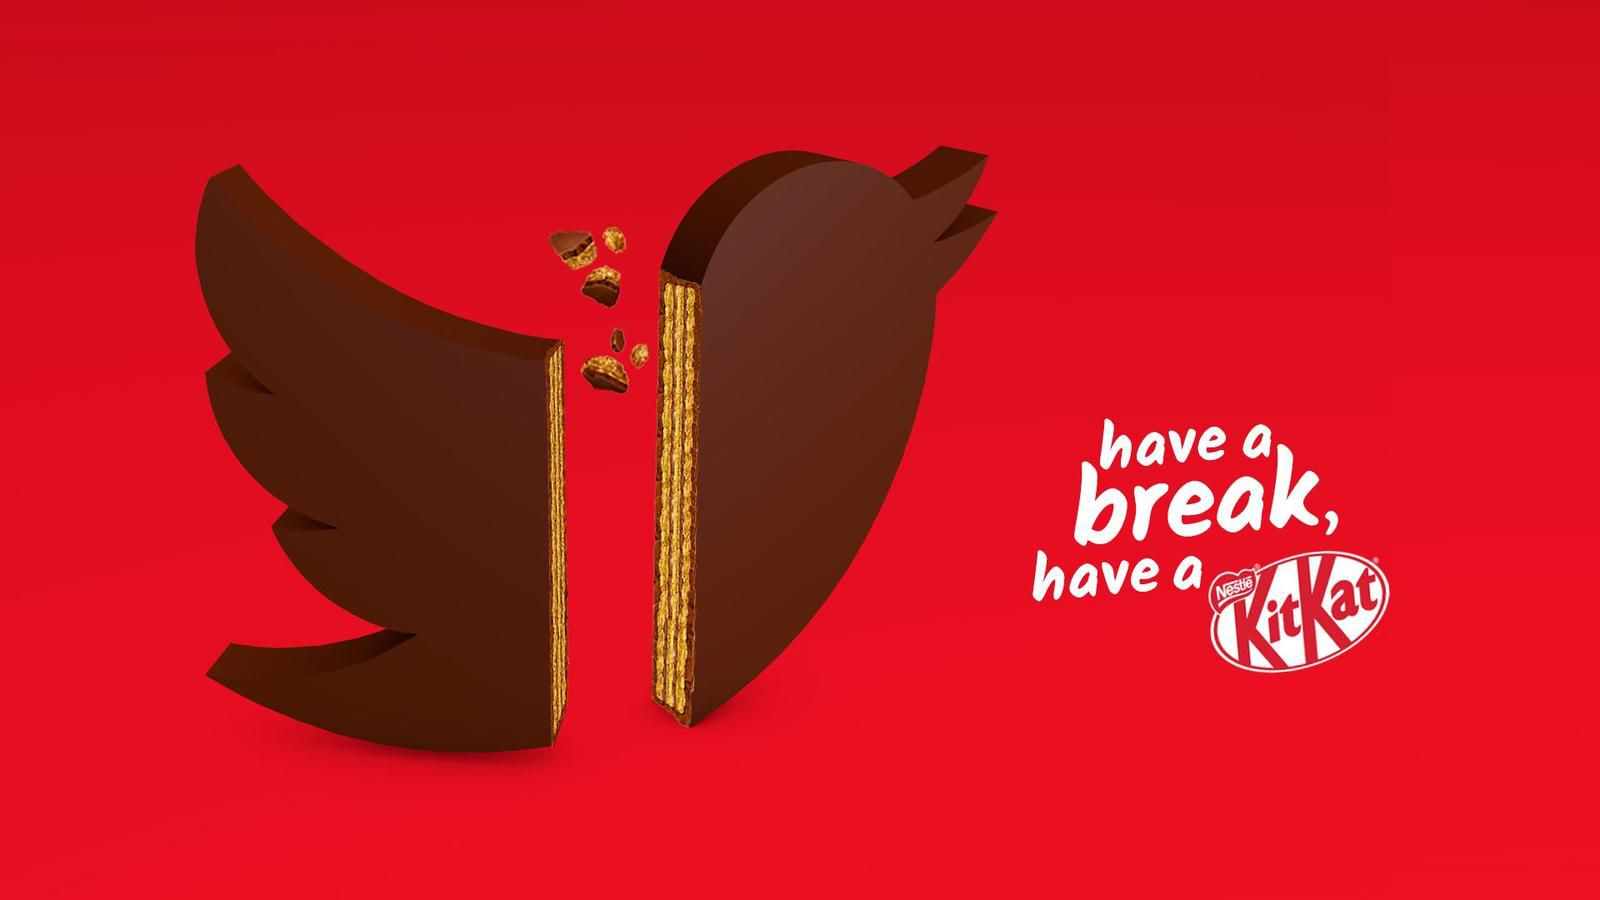 """KitKat : """"Have a break, have a KitKat"""" I Agence : Miami Ad School, Hambourg, Allemagne (juin 2020)"""